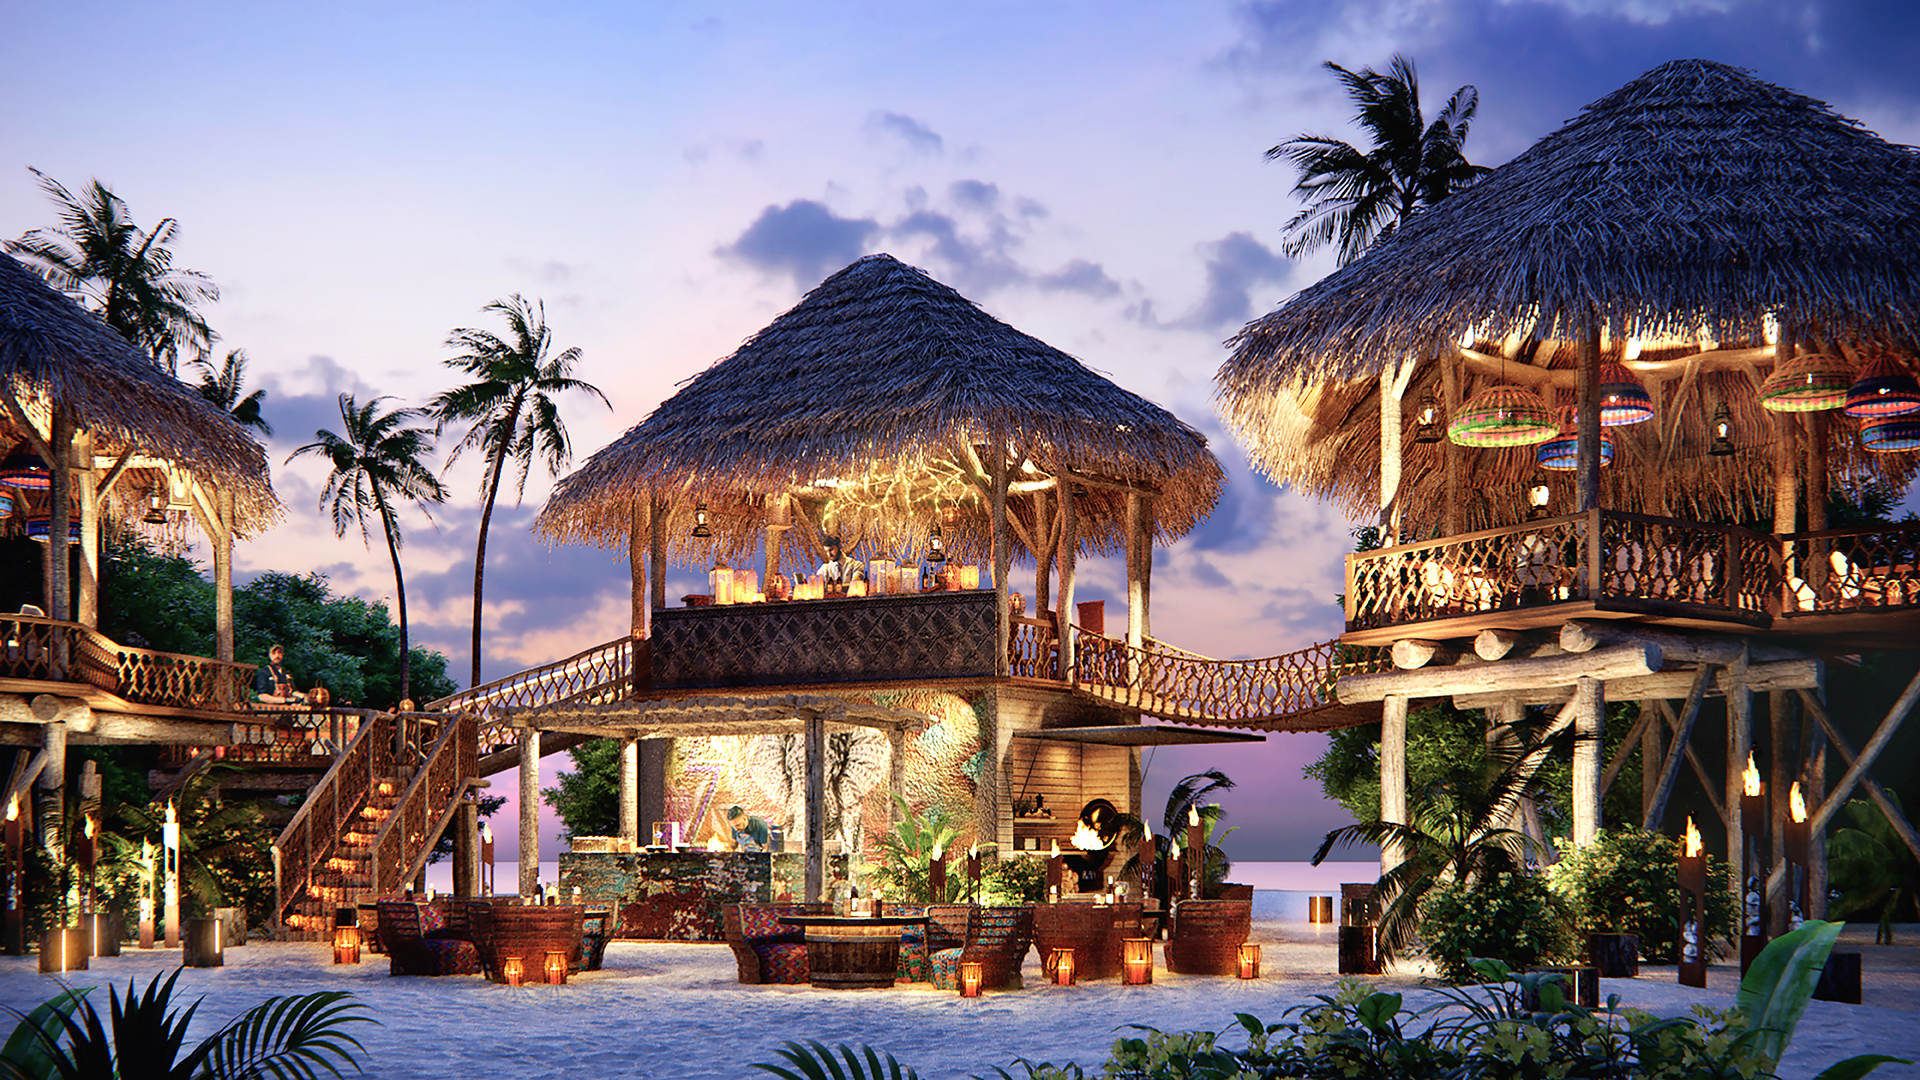 Malediven Haus Im Wasser Jw Marriott Maldives Resort & Spa - Global Communication